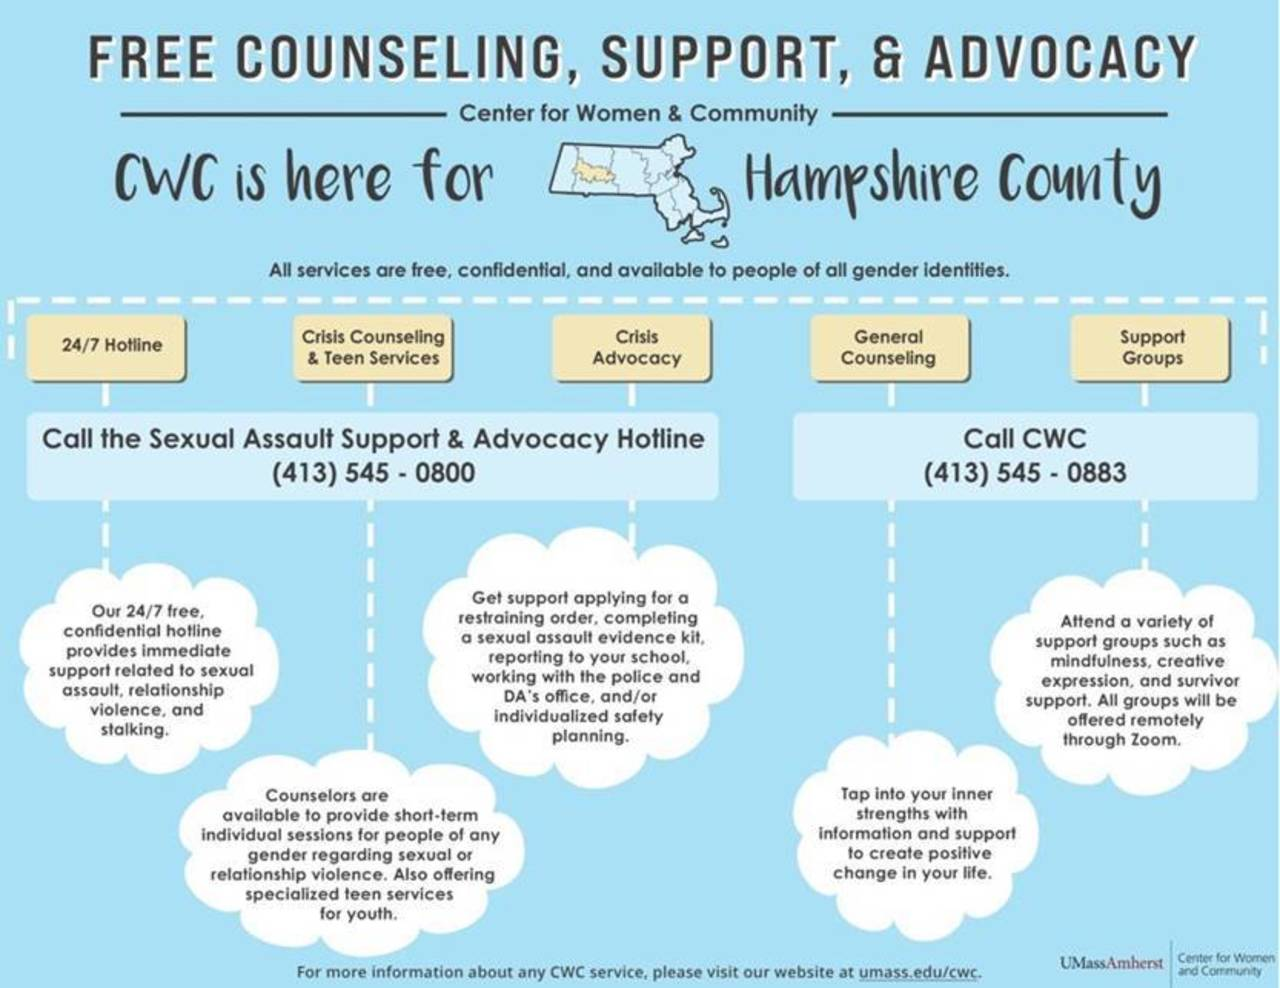 Free counseling, support & advocacy: CWC is here for Hampshire County